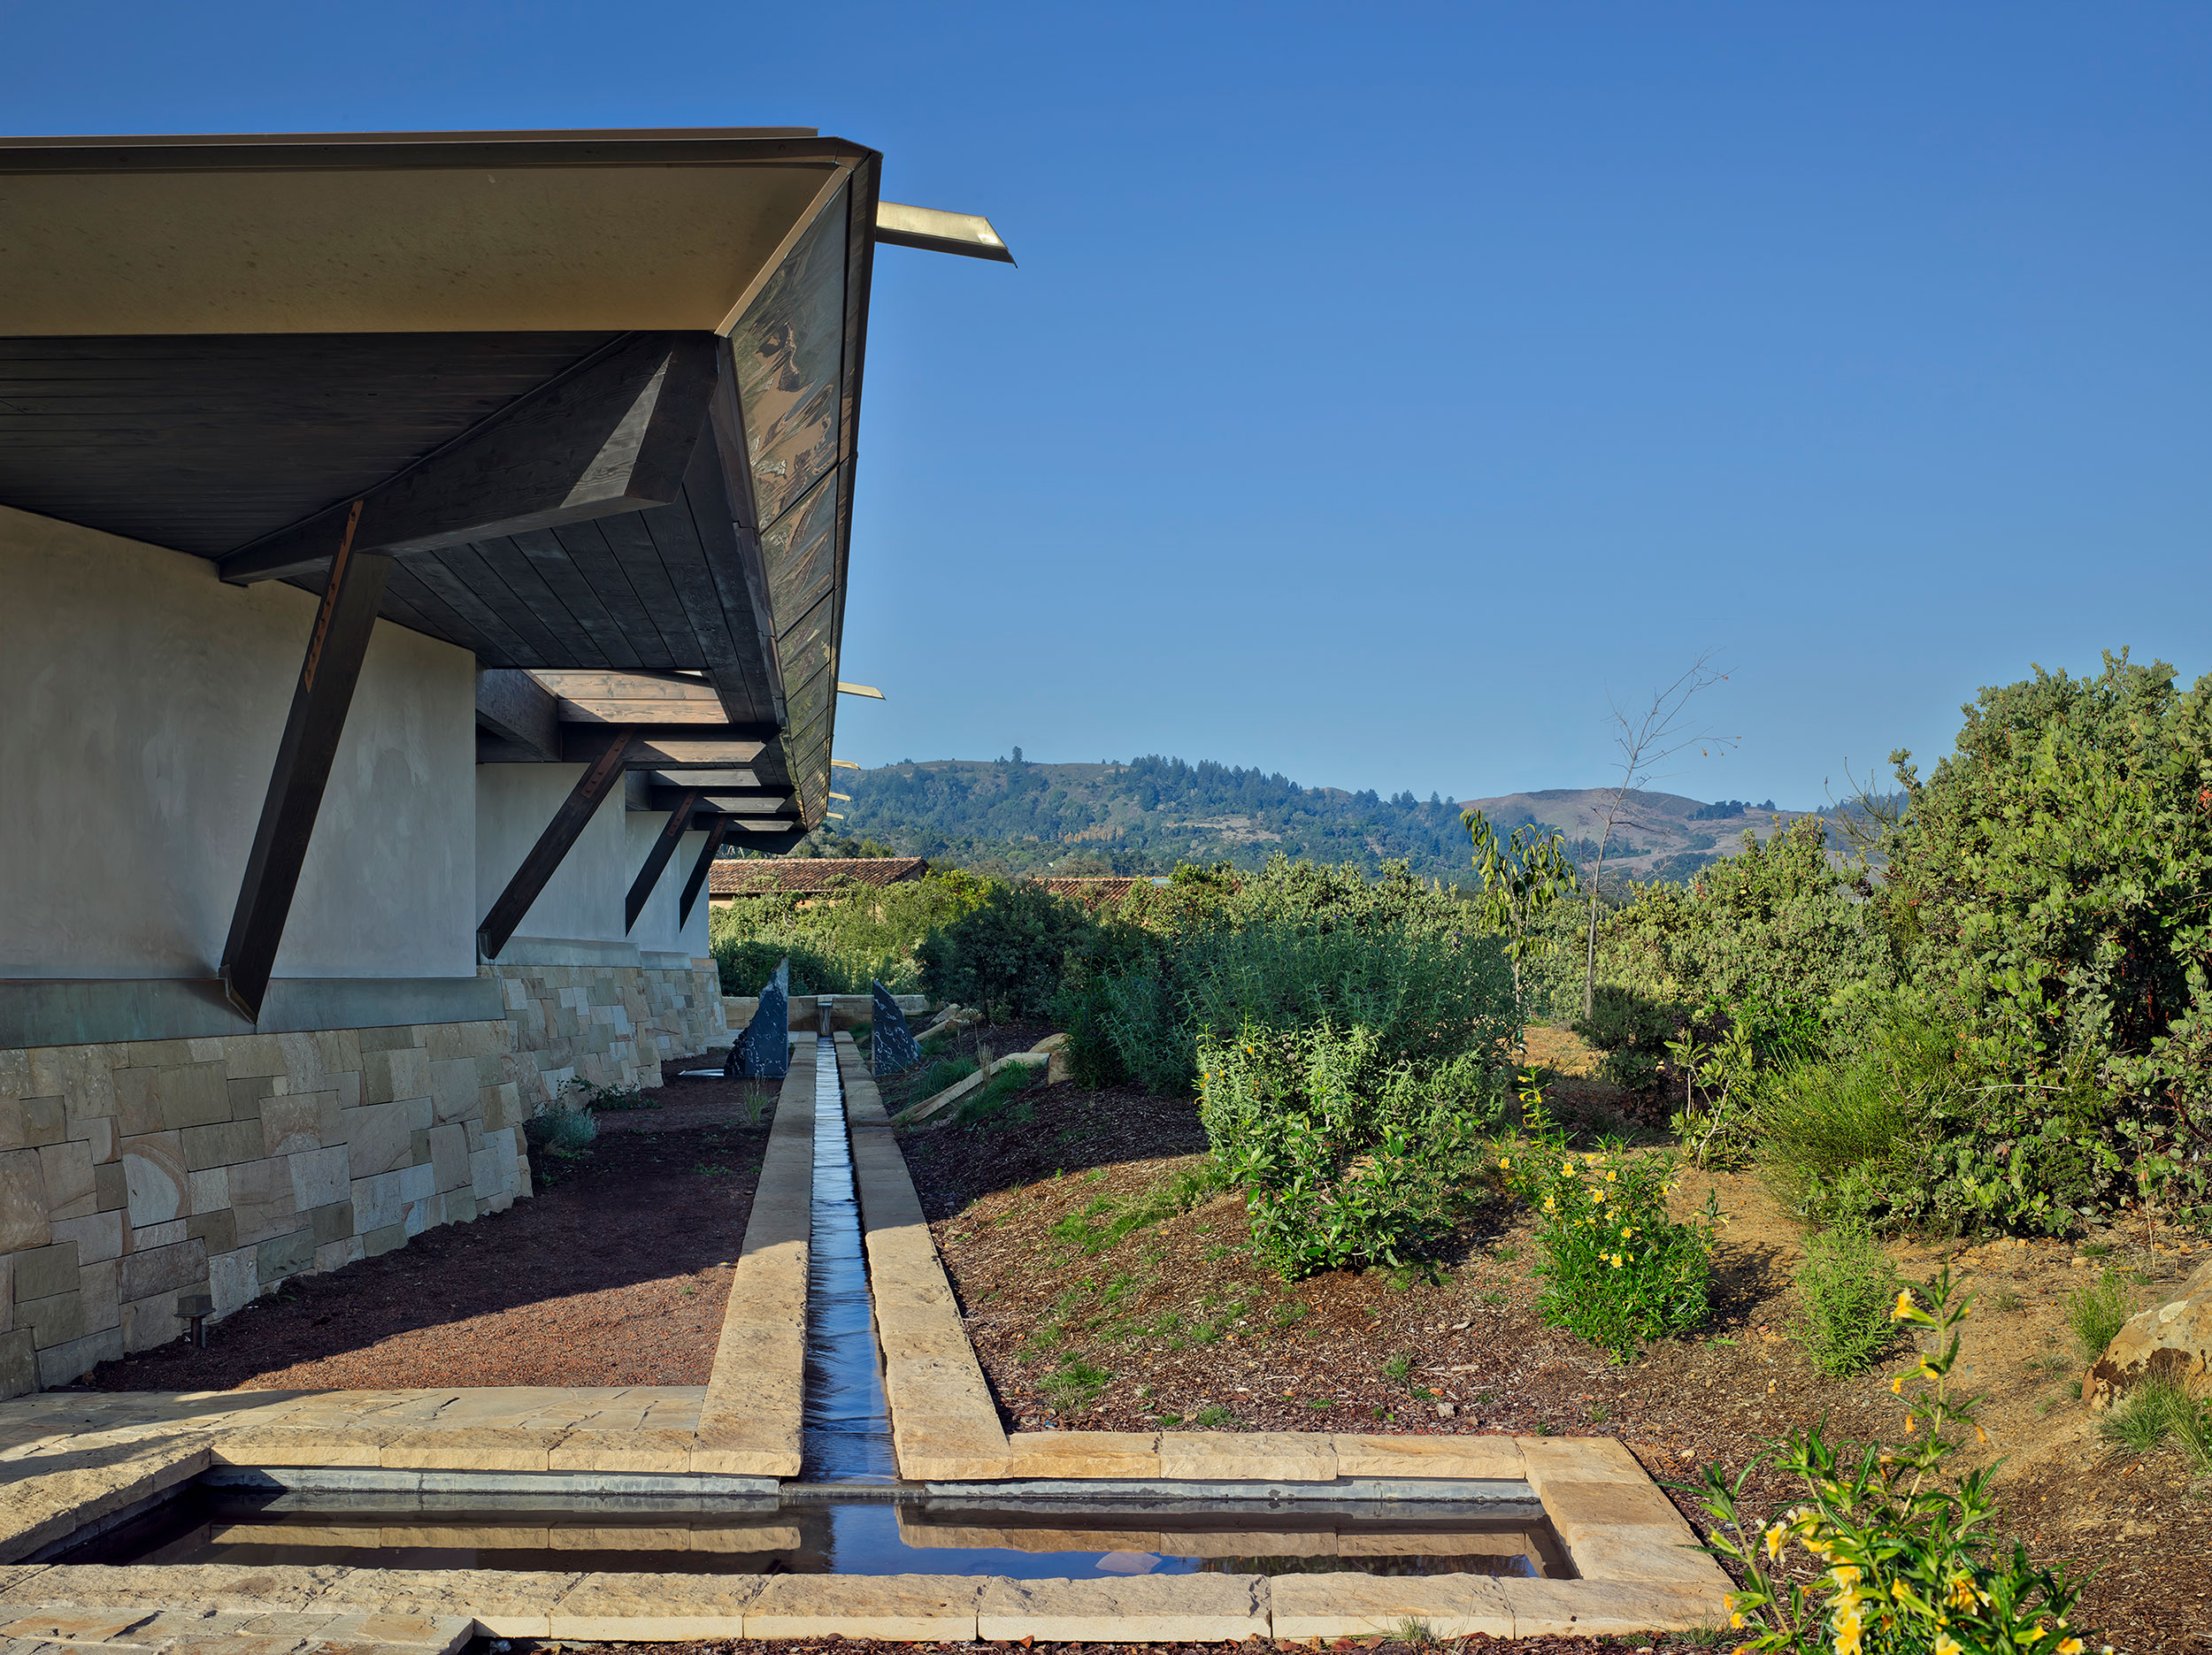 California Residence, House, Sustainability, Nature, Natural Light, Natural Materials, Biophilia, Ecology, Sky, Hills, Water